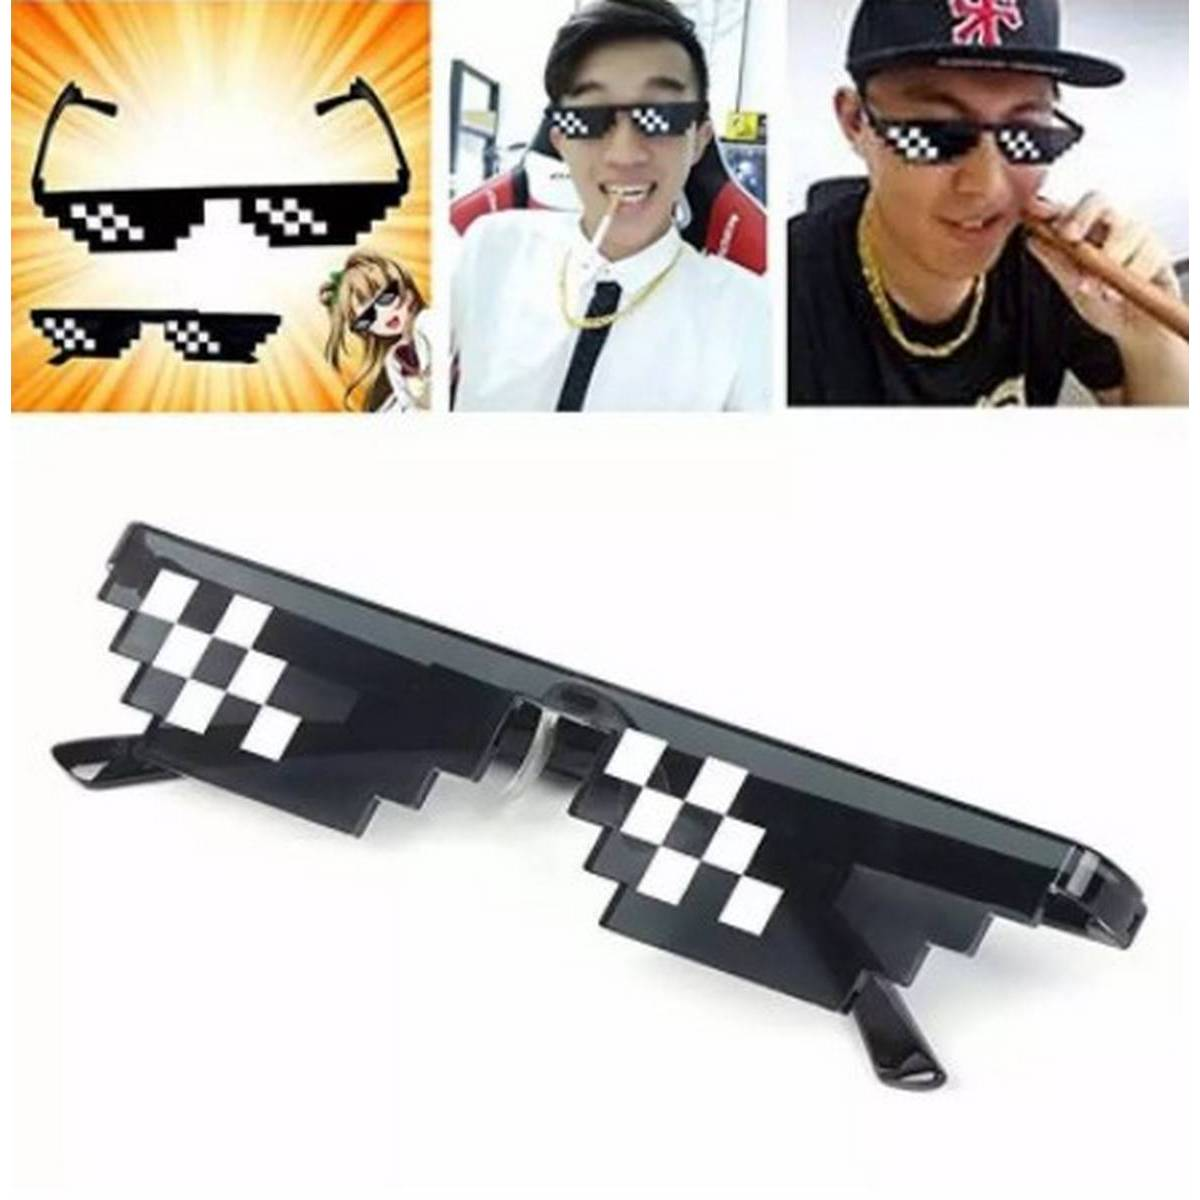 Thug Life Sunglasses for Women and men latest addition